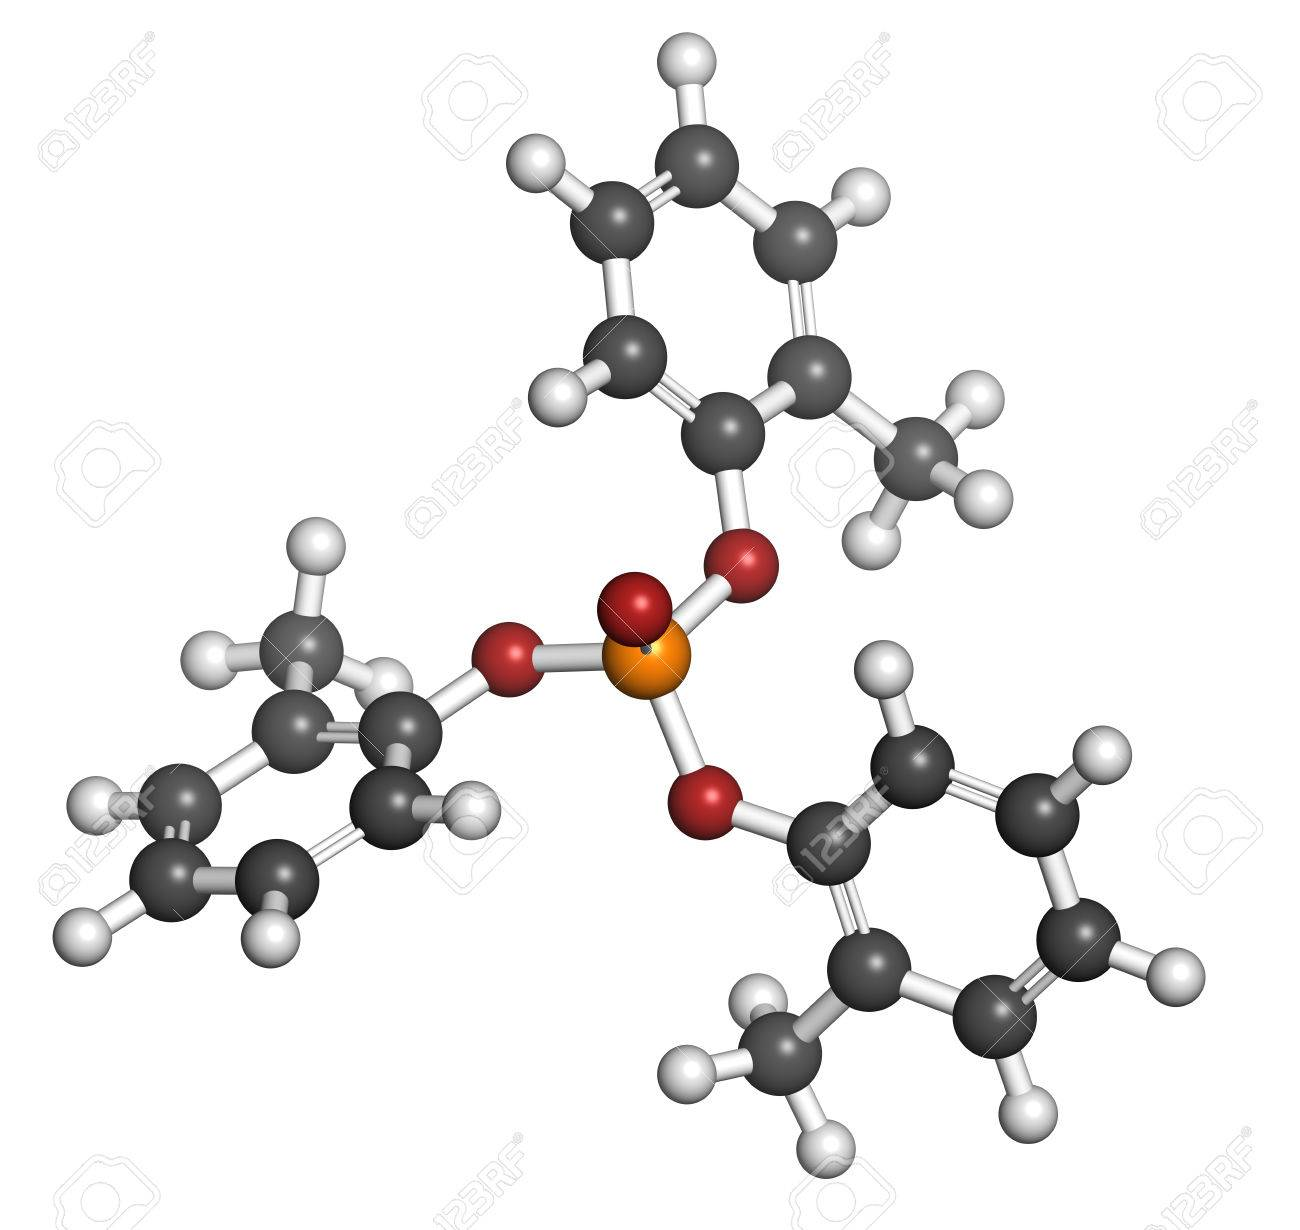 Tricresyl phosphate (TCP) molecule. Used as plasticizer, for waterproofing, as flame retardant, etc. Known to be neurotoxin. Atoms are represented as spheres with conventional color coding: hydrogen (white), carbon (grey), oxygen (red), phosphorus (orange - 25357494